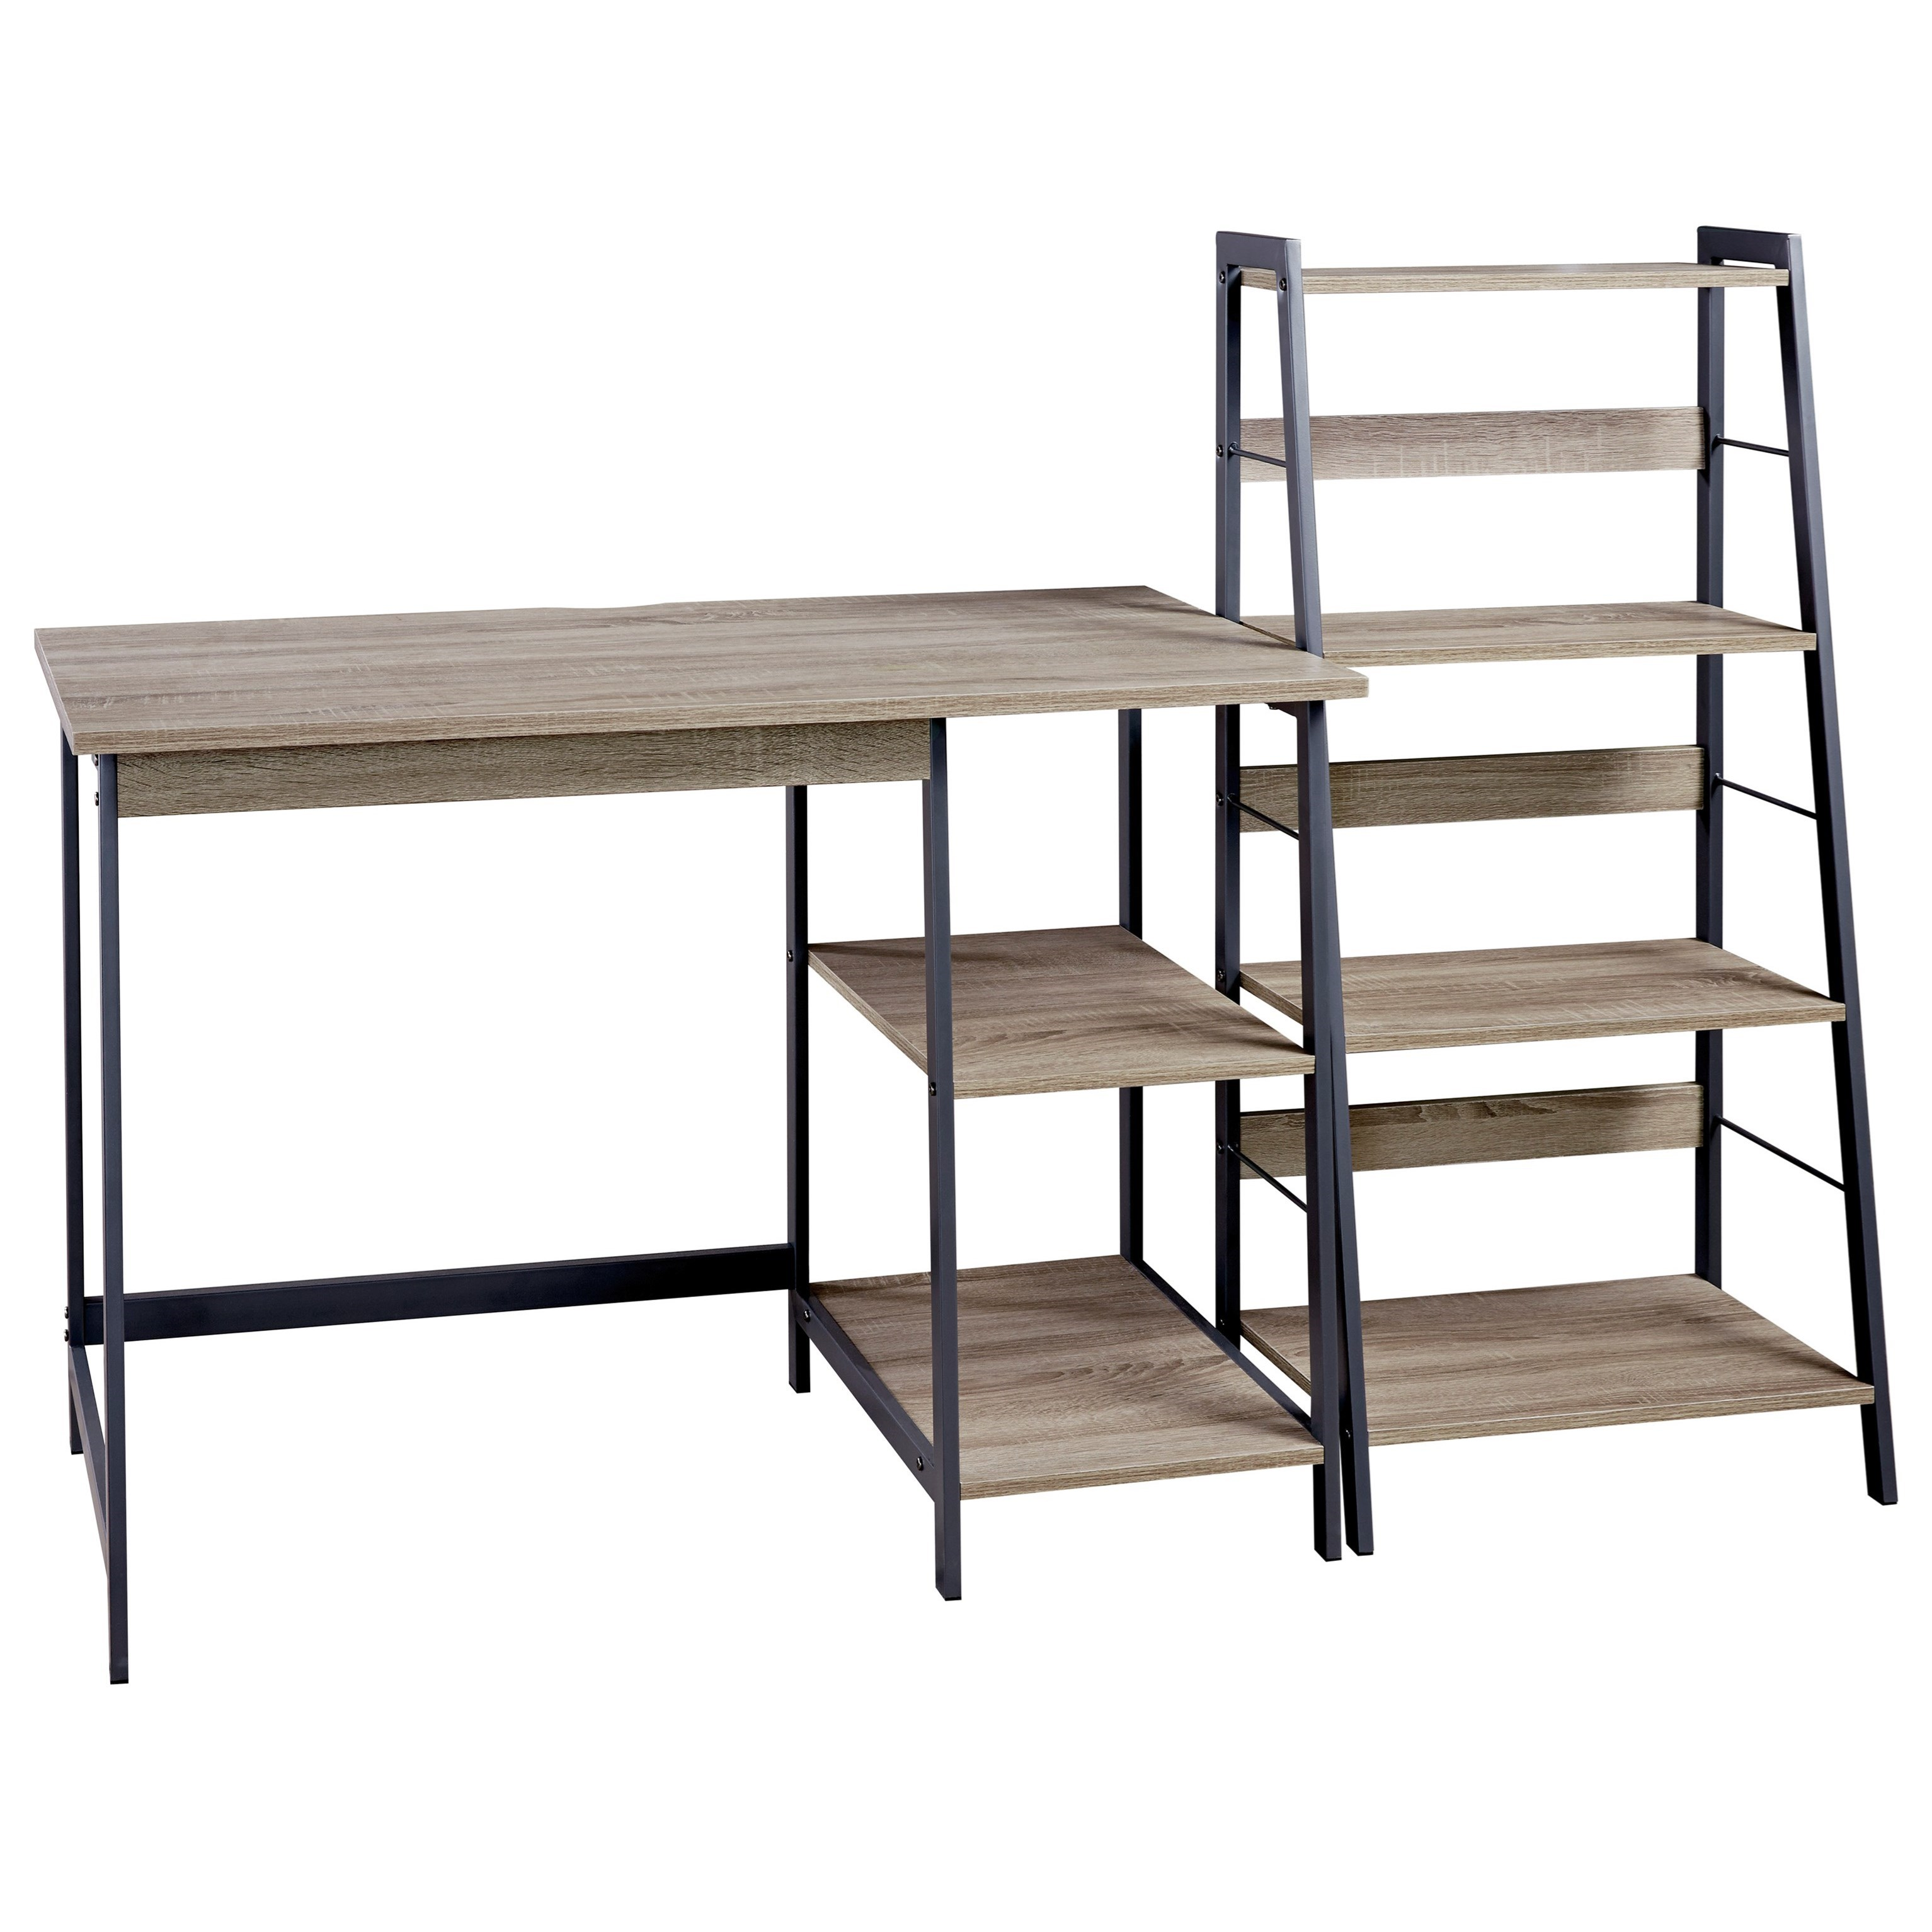 Soho 2-Piece Home Office Desk and Shelf Set by Signature Design by Ashley at Northeast Factory Direct